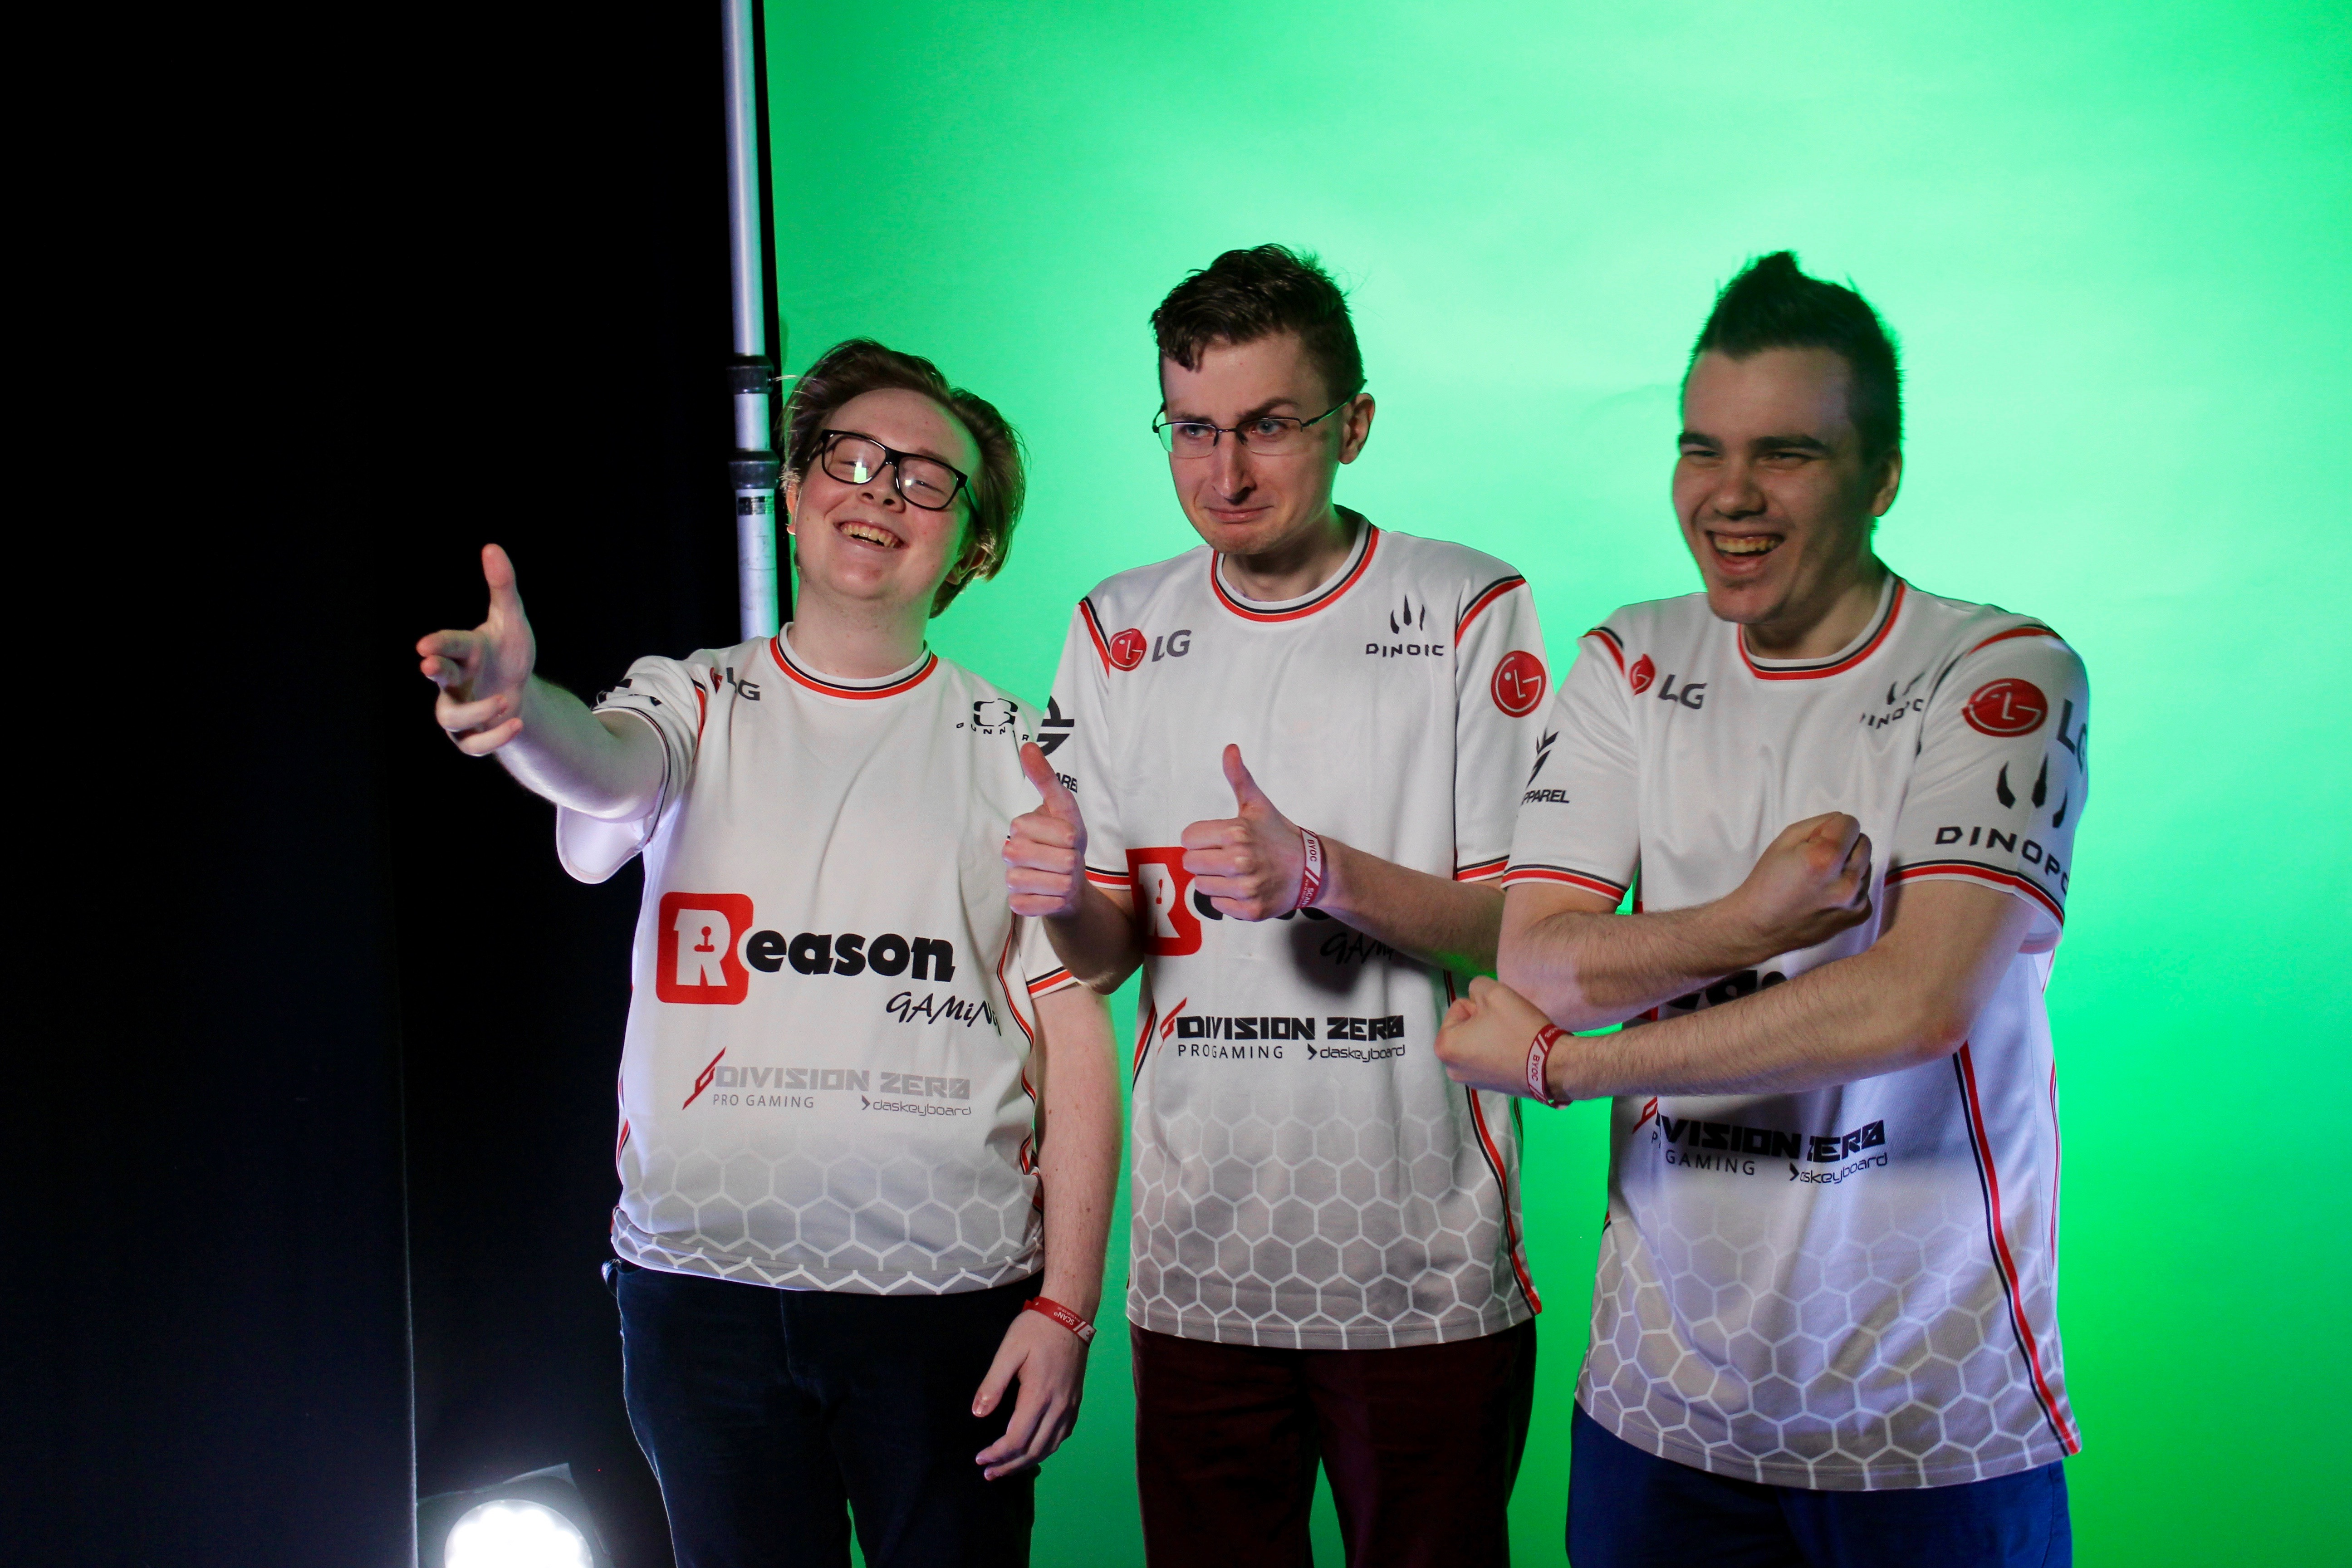 tomzeY (right) & Sev (middle) qualify for ESL UK EPS grand finals at MCM Comic Con London